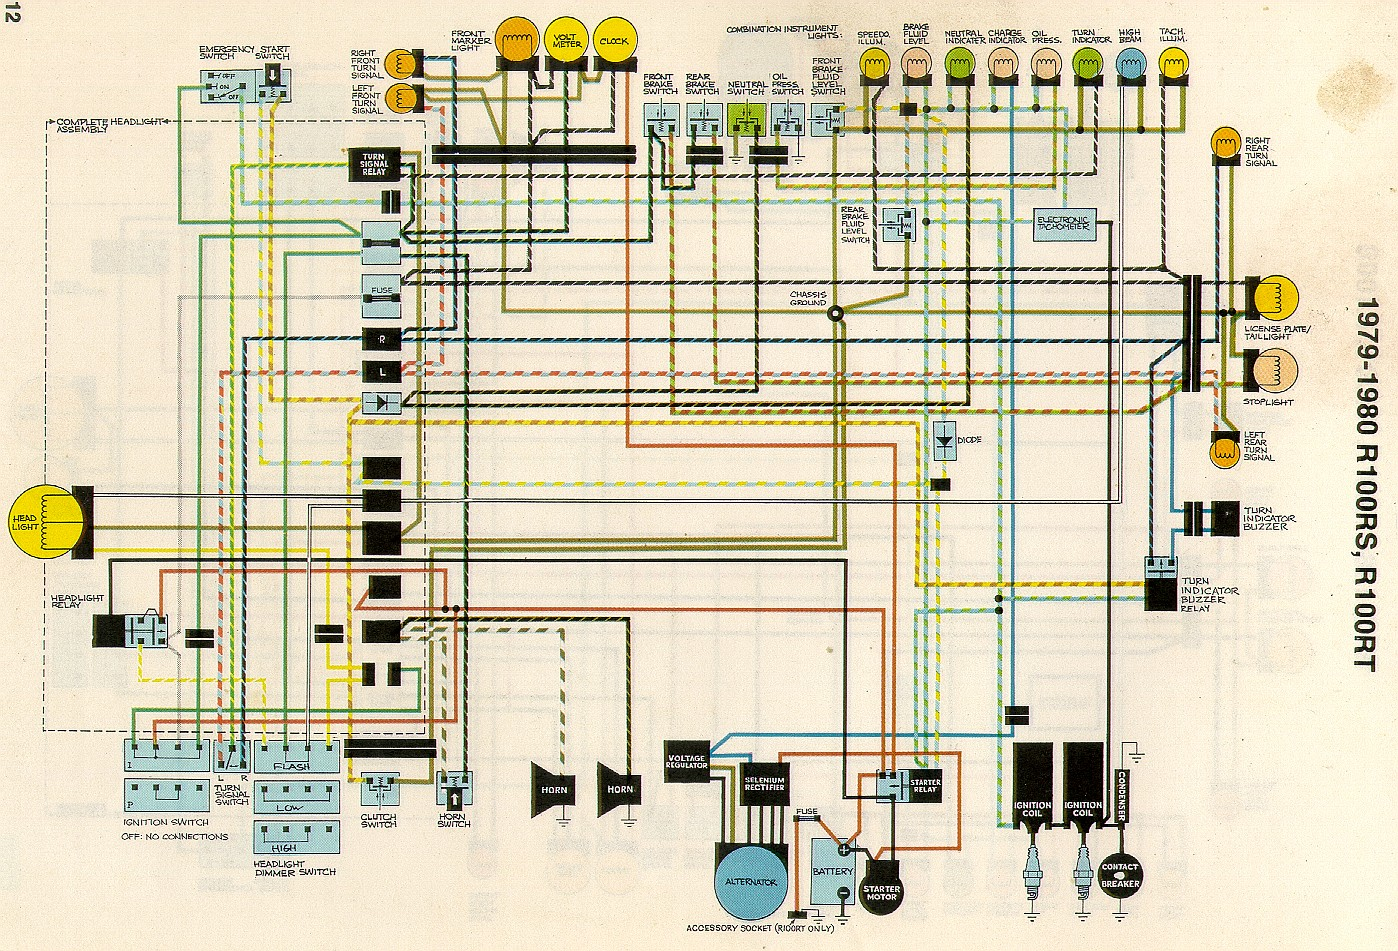 79rs 5 united articles wiring diagrams bmw r100rs gauge wiring diagram at honlapkeszites.co